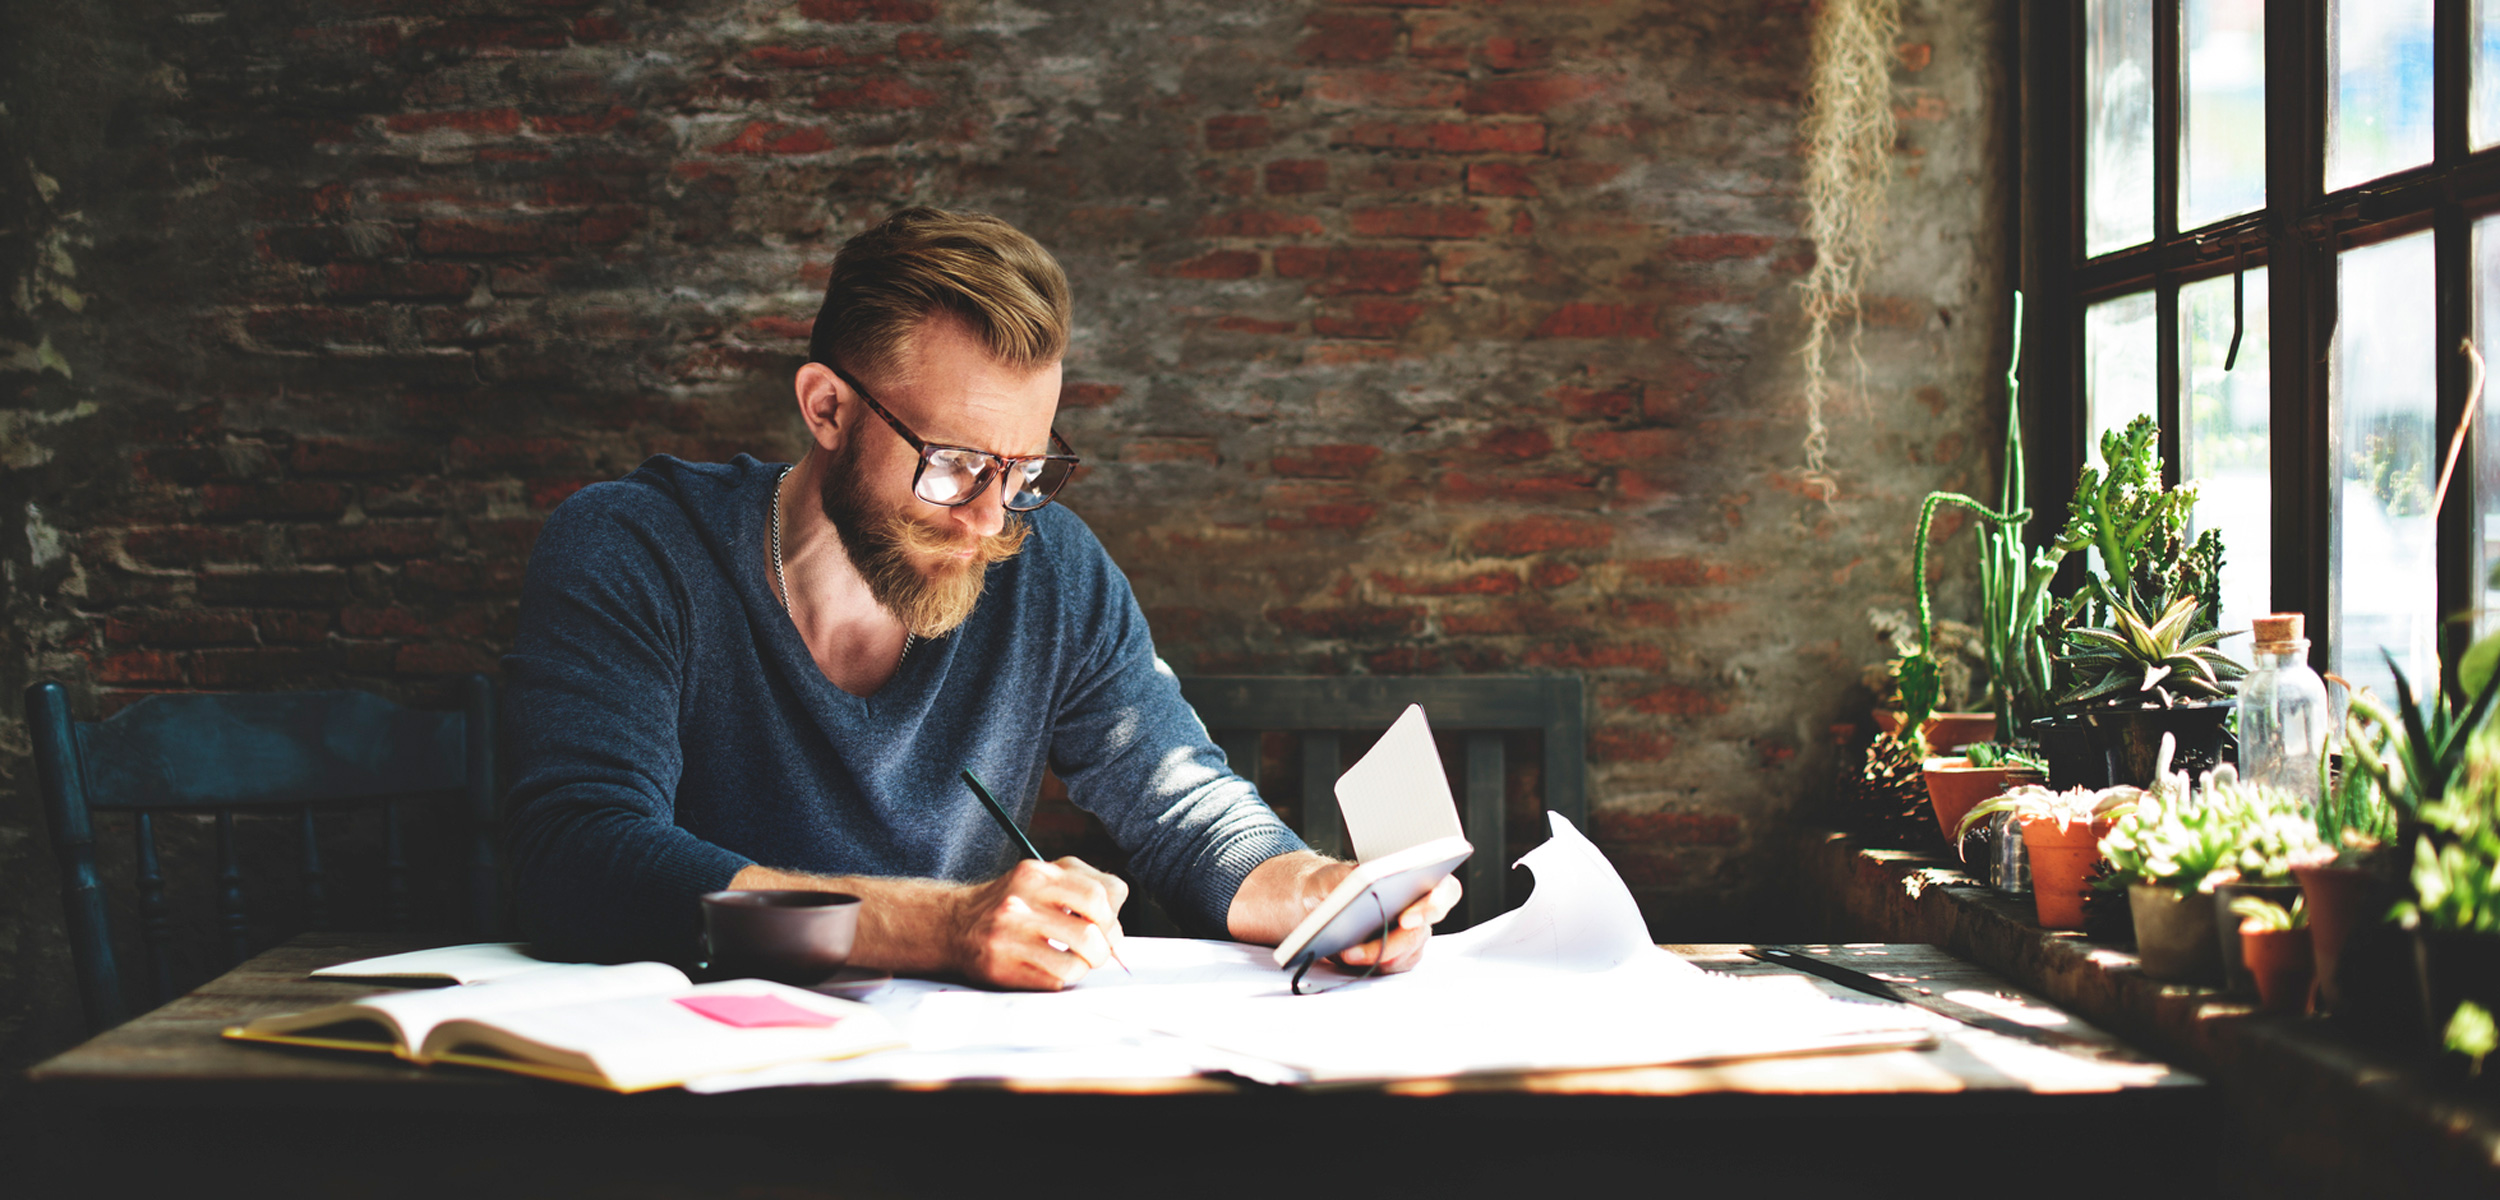 hipster-working1